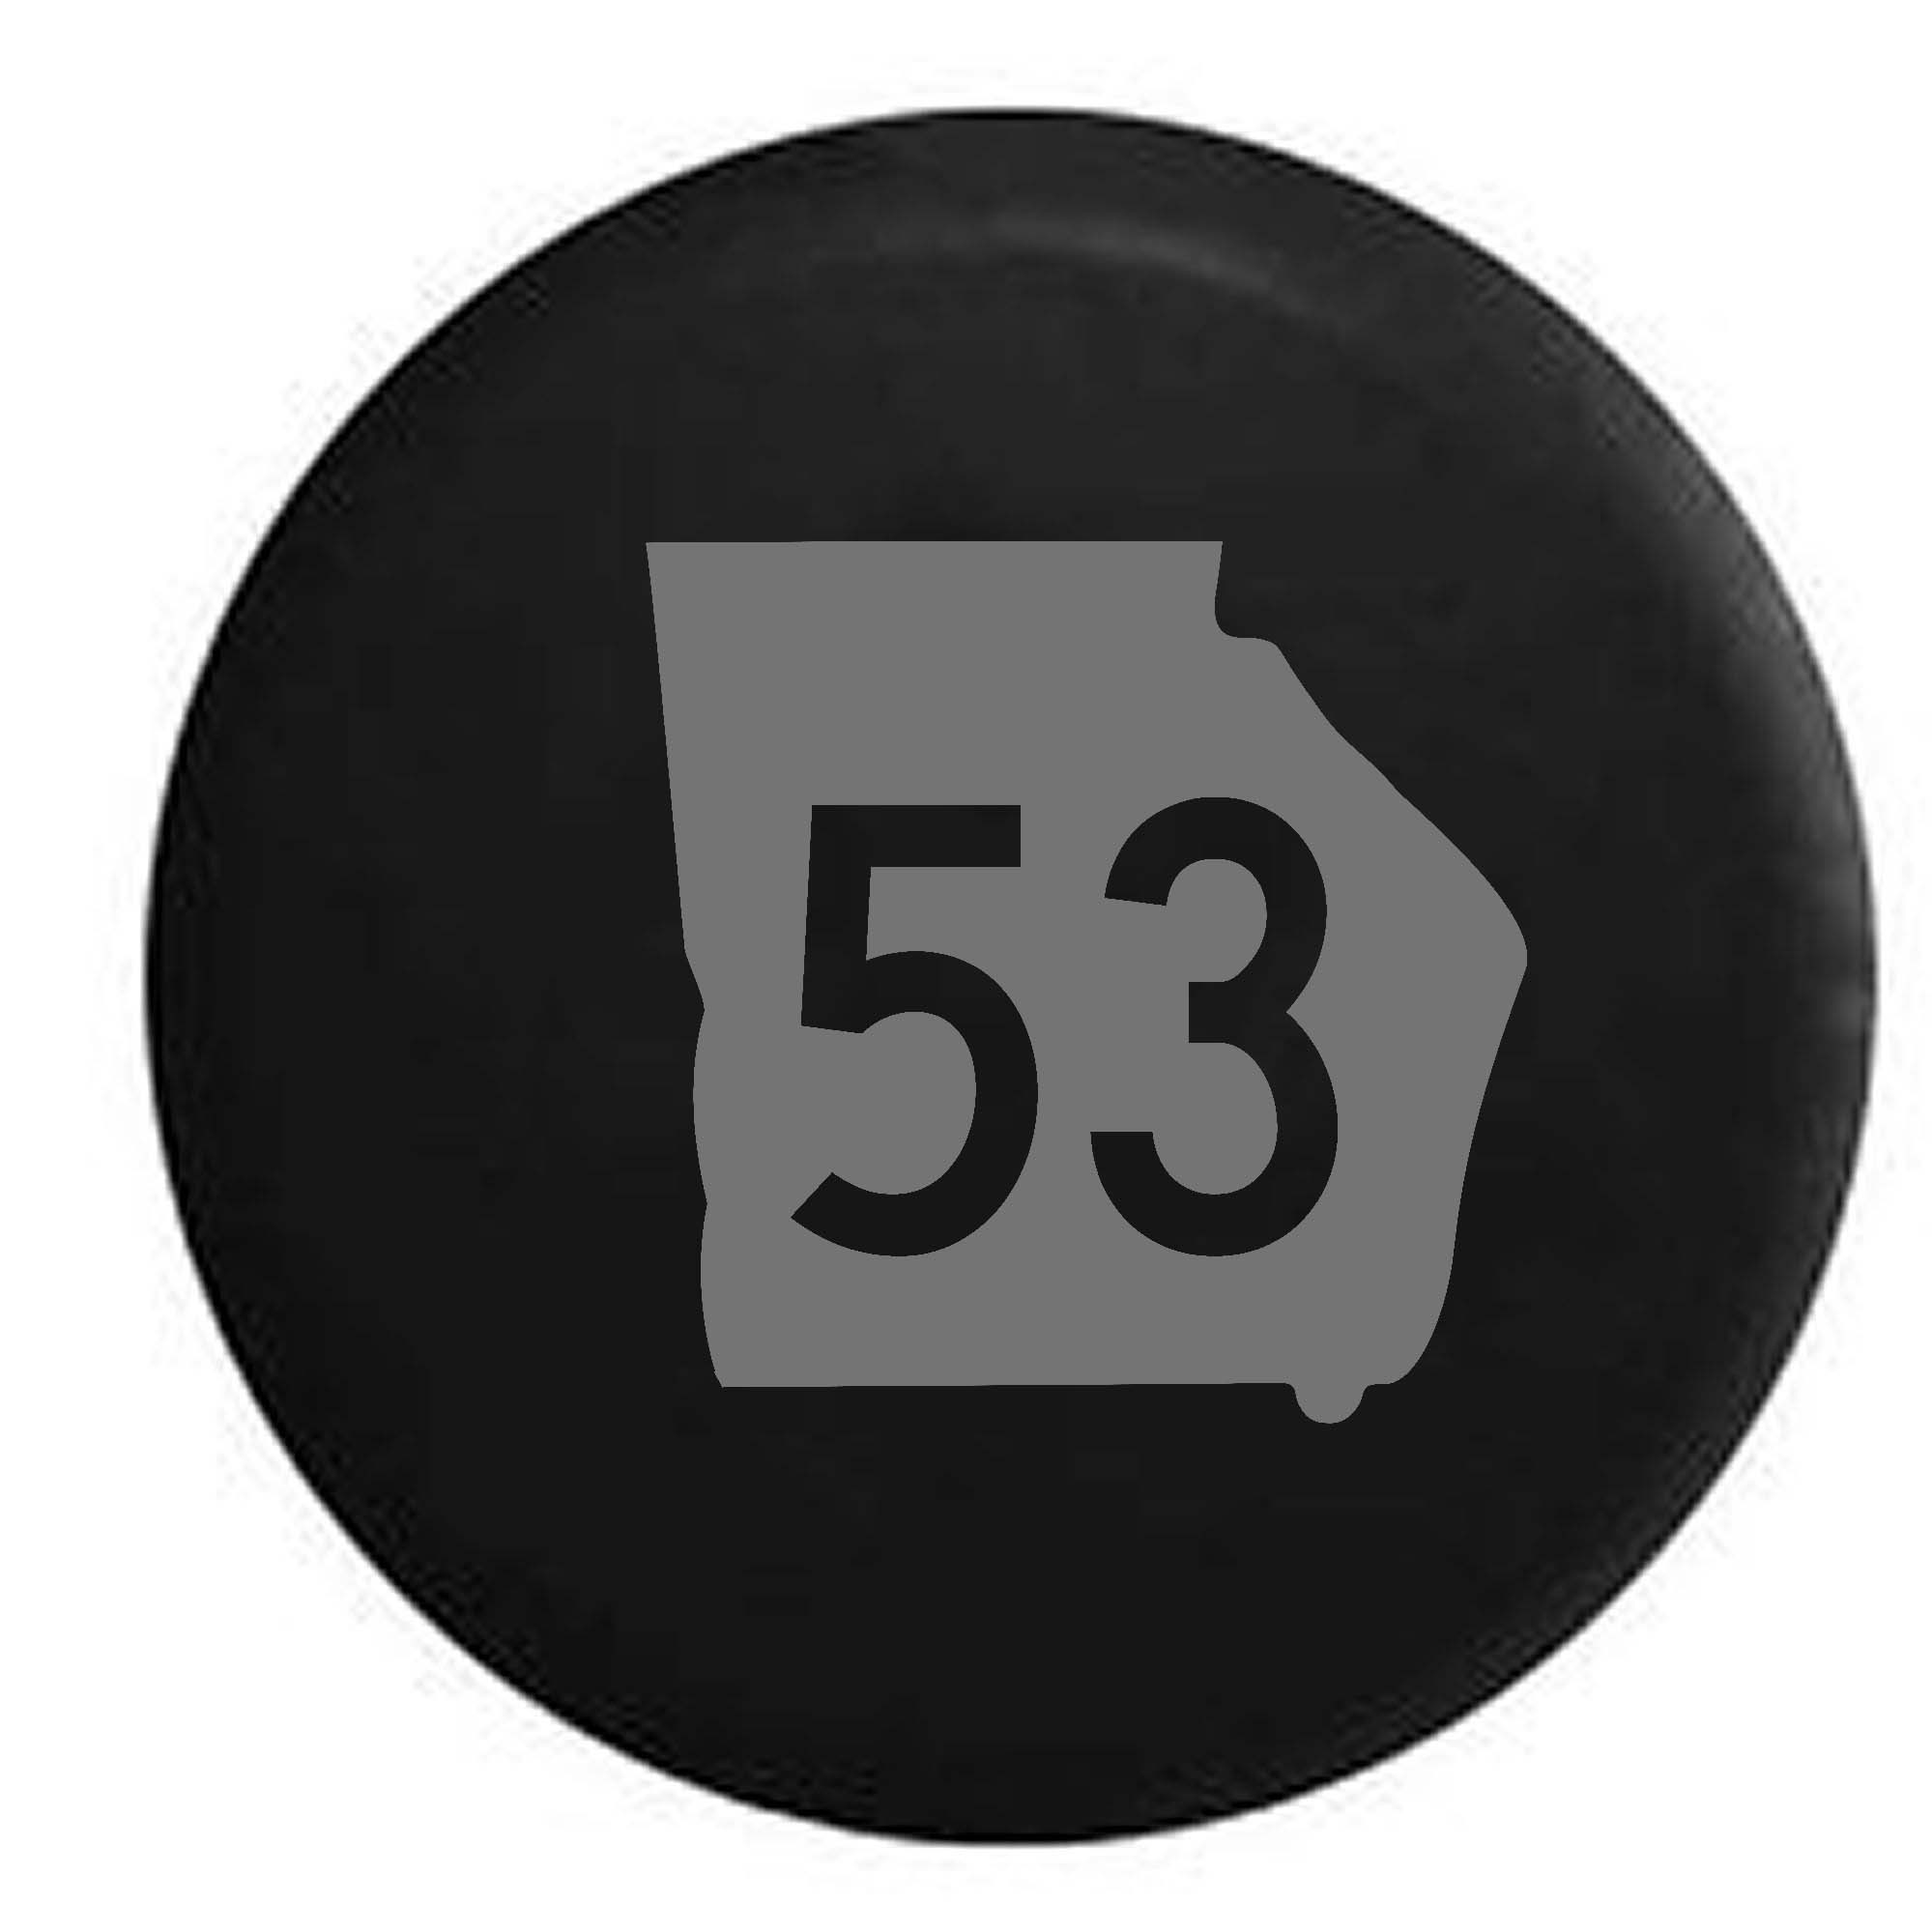 Georgia State Highway Route 53 Scenic Sign Spare Tire Cover Vinyl Stealth Black 33 in